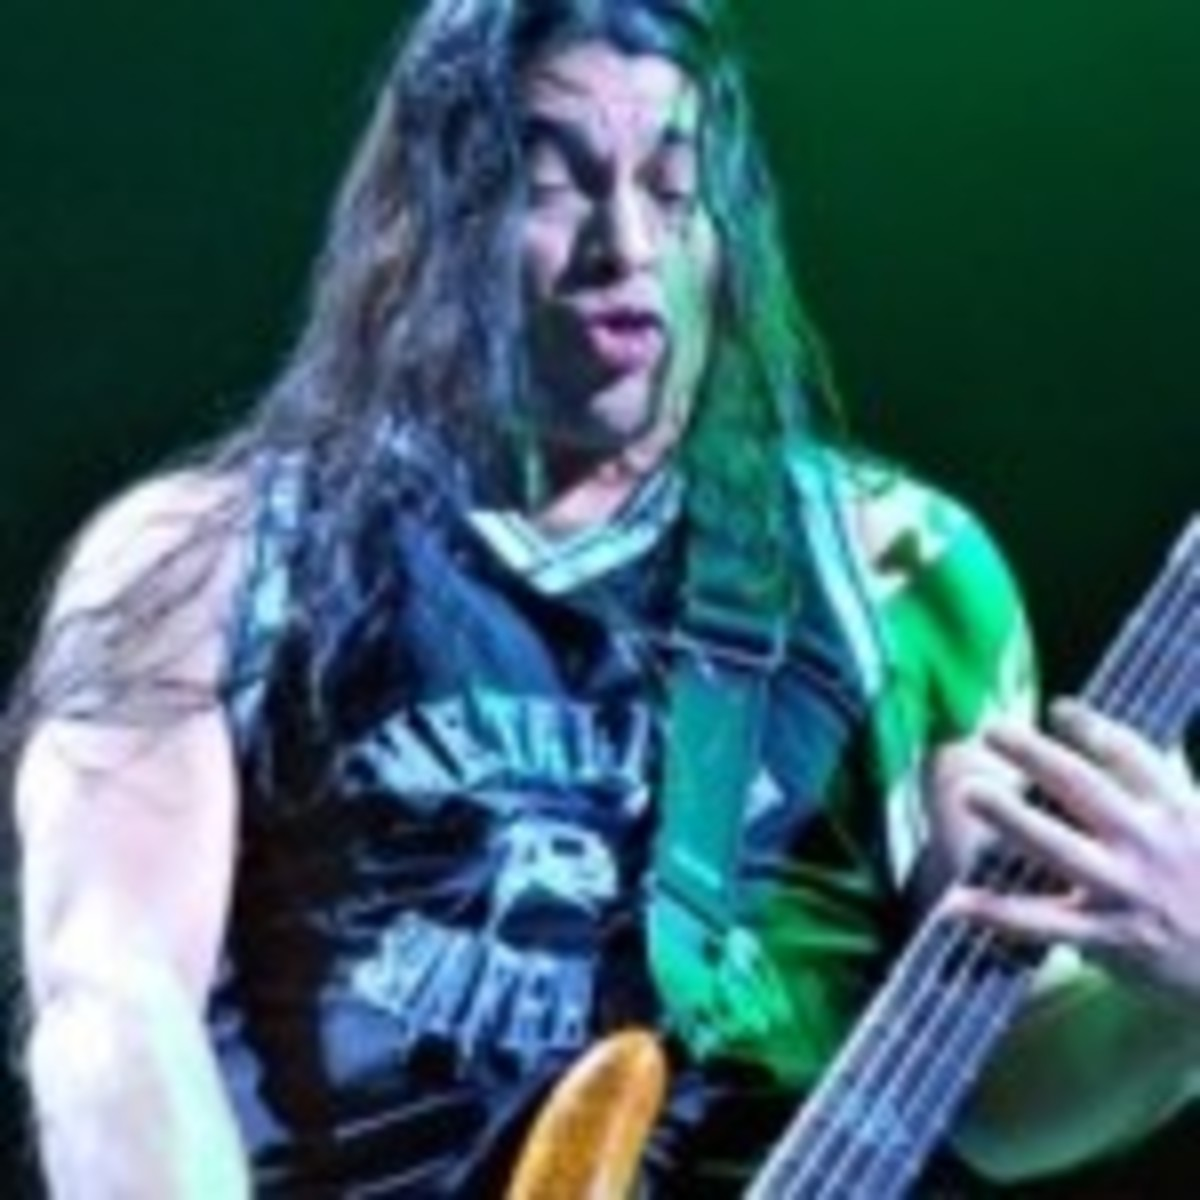 Metallica bassist Rob Trujillo (Photo by Chris M. Junior)